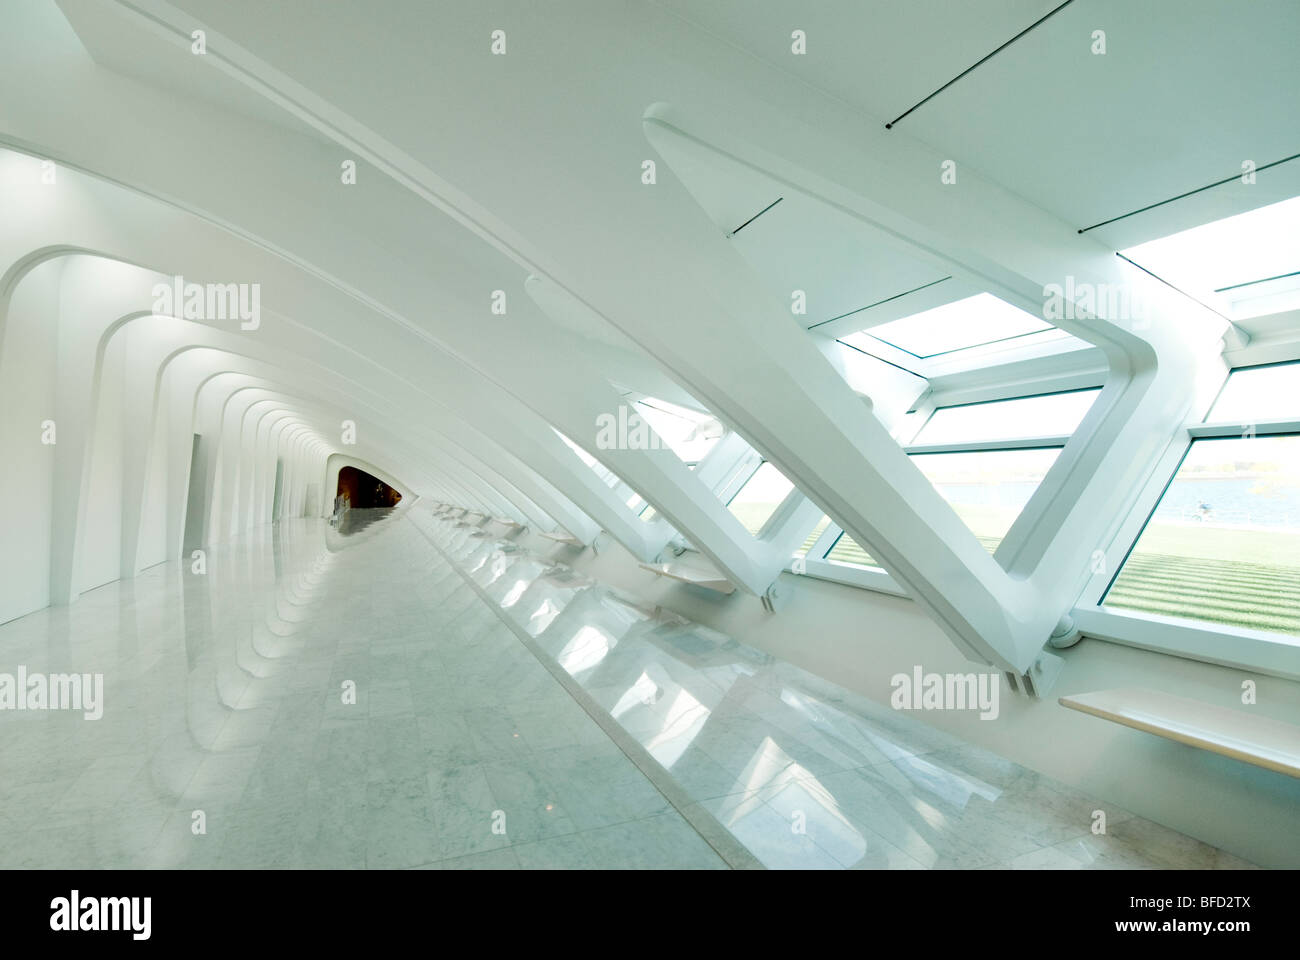 https://c8.alamy.com/compde/bfd2tx/anmutige-interieur-des-milwaukee-art-museum-entworfen-von-santiago-calatrava-spanischer-architekt-milwaukee-wisconsin-usa-bfd2tx.jpg